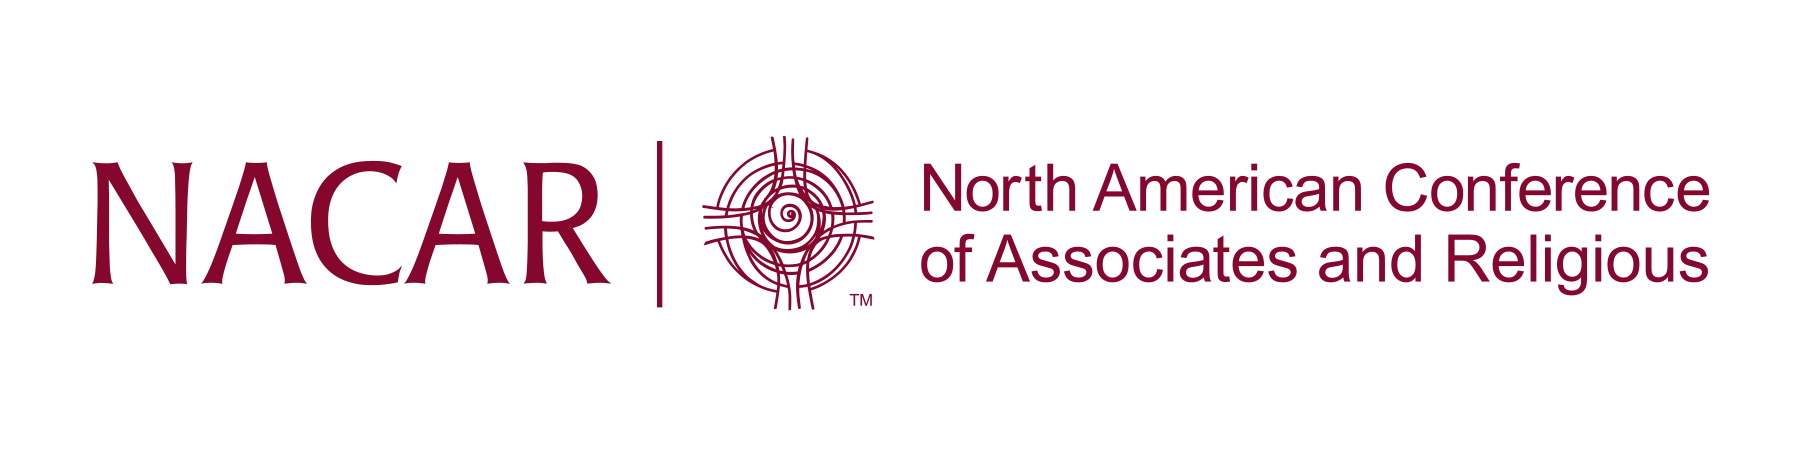 NACAR Logo with NACAR on left, spiral symbol in middle and North American Conference of Associates and Religious on right